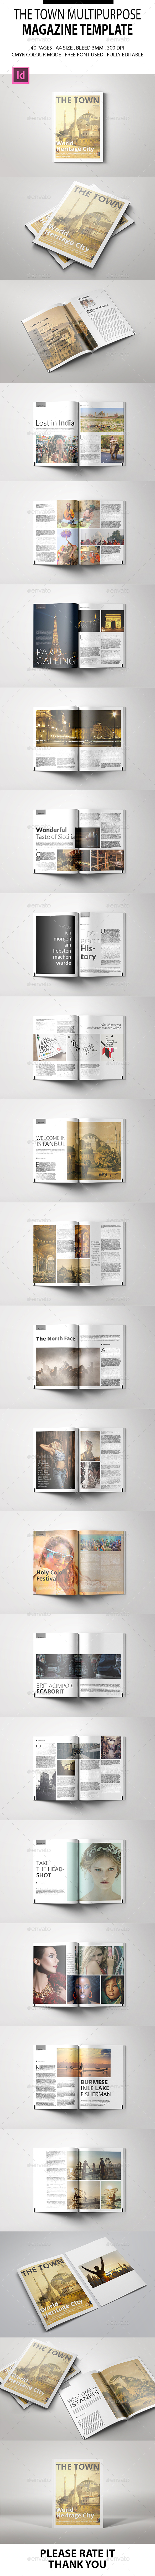 The Town Magazine Template - Magazines Print Templates